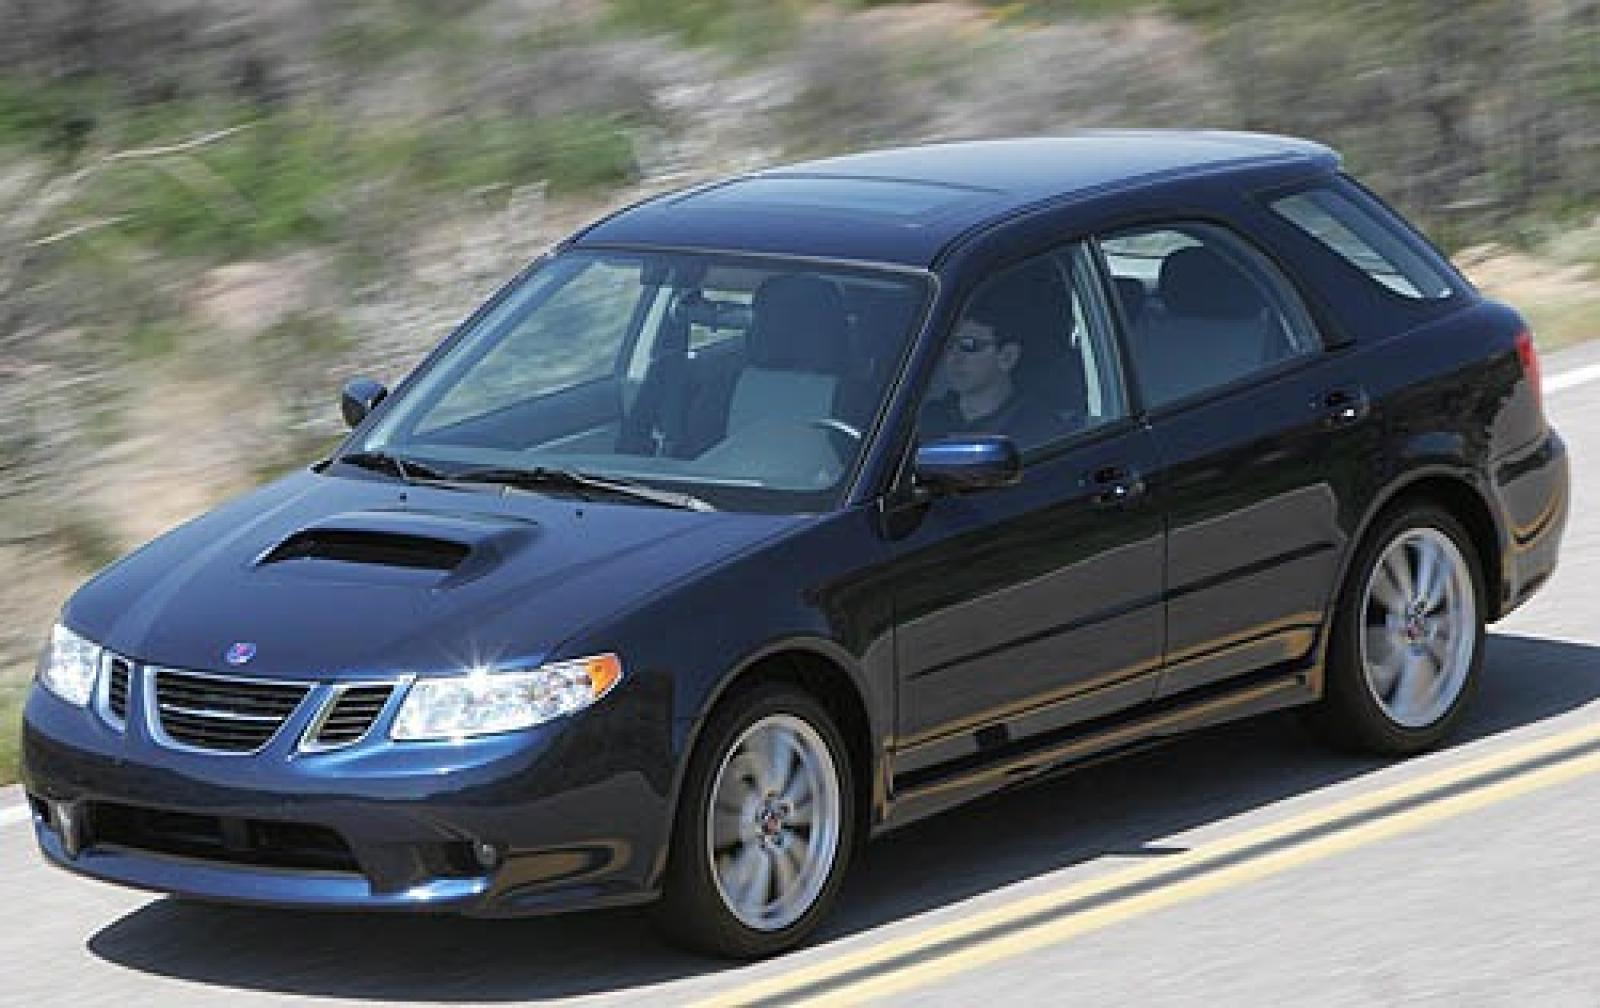 2006 saab 9 2x information and photos zombiedrive. Black Bedroom Furniture Sets. Home Design Ideas